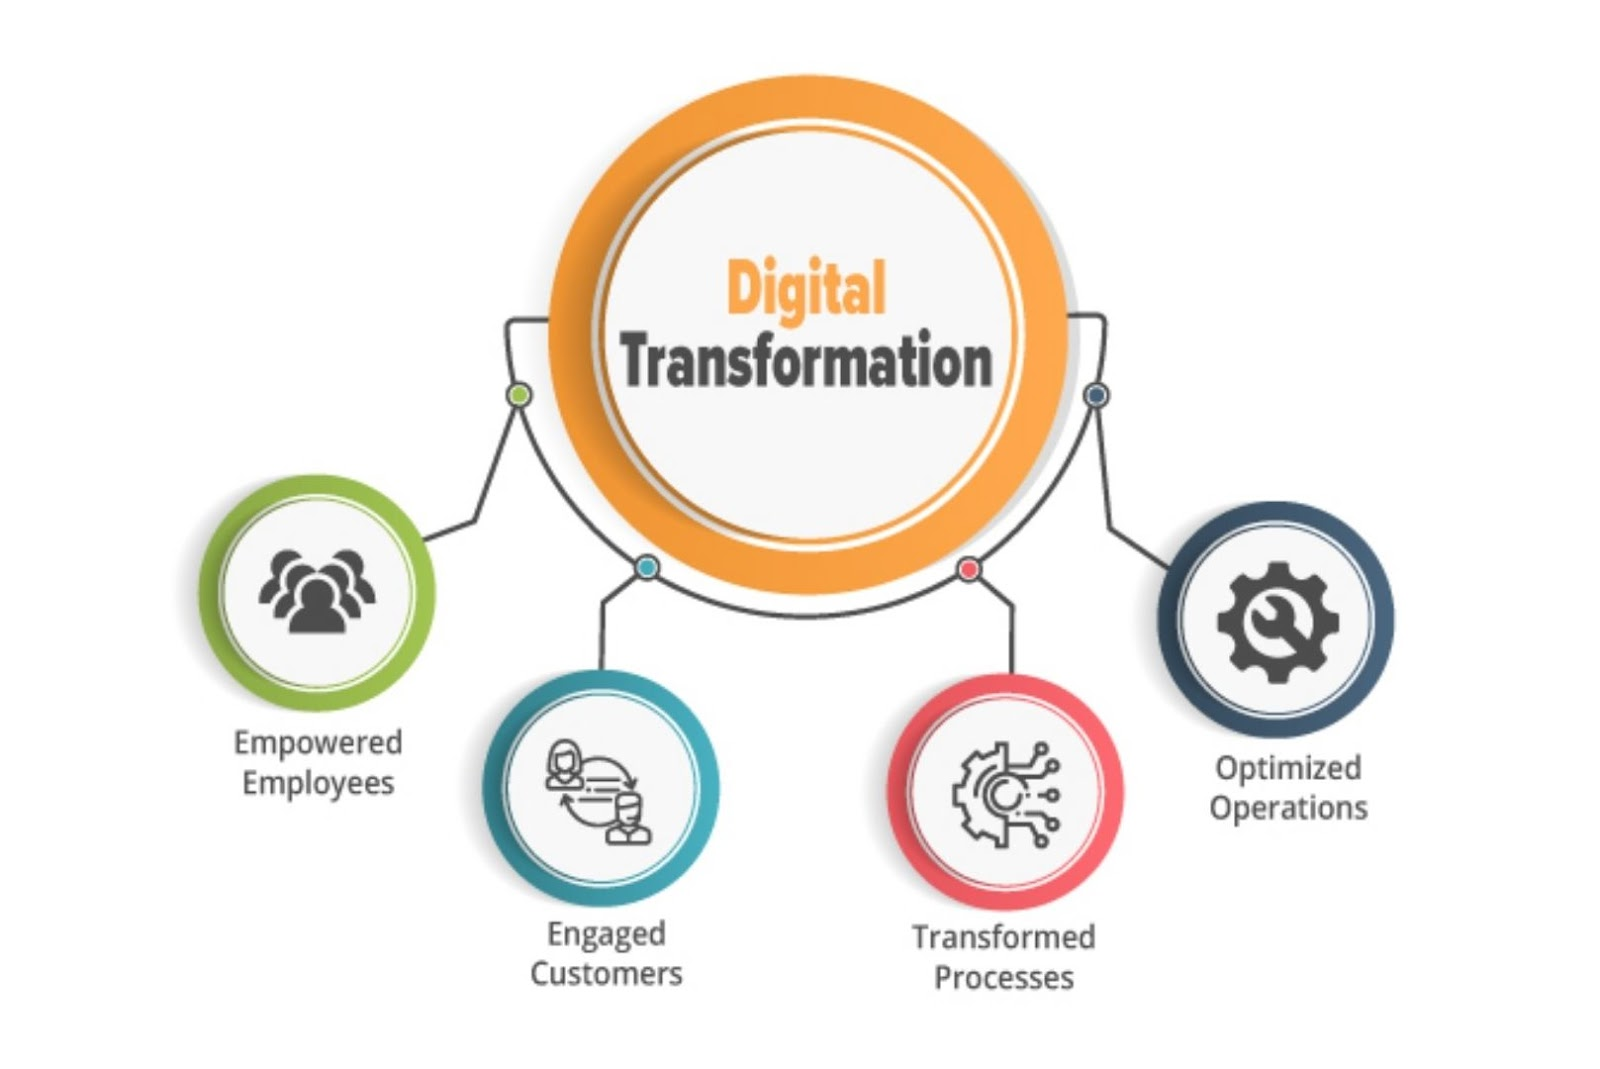 Digital Transformation definition